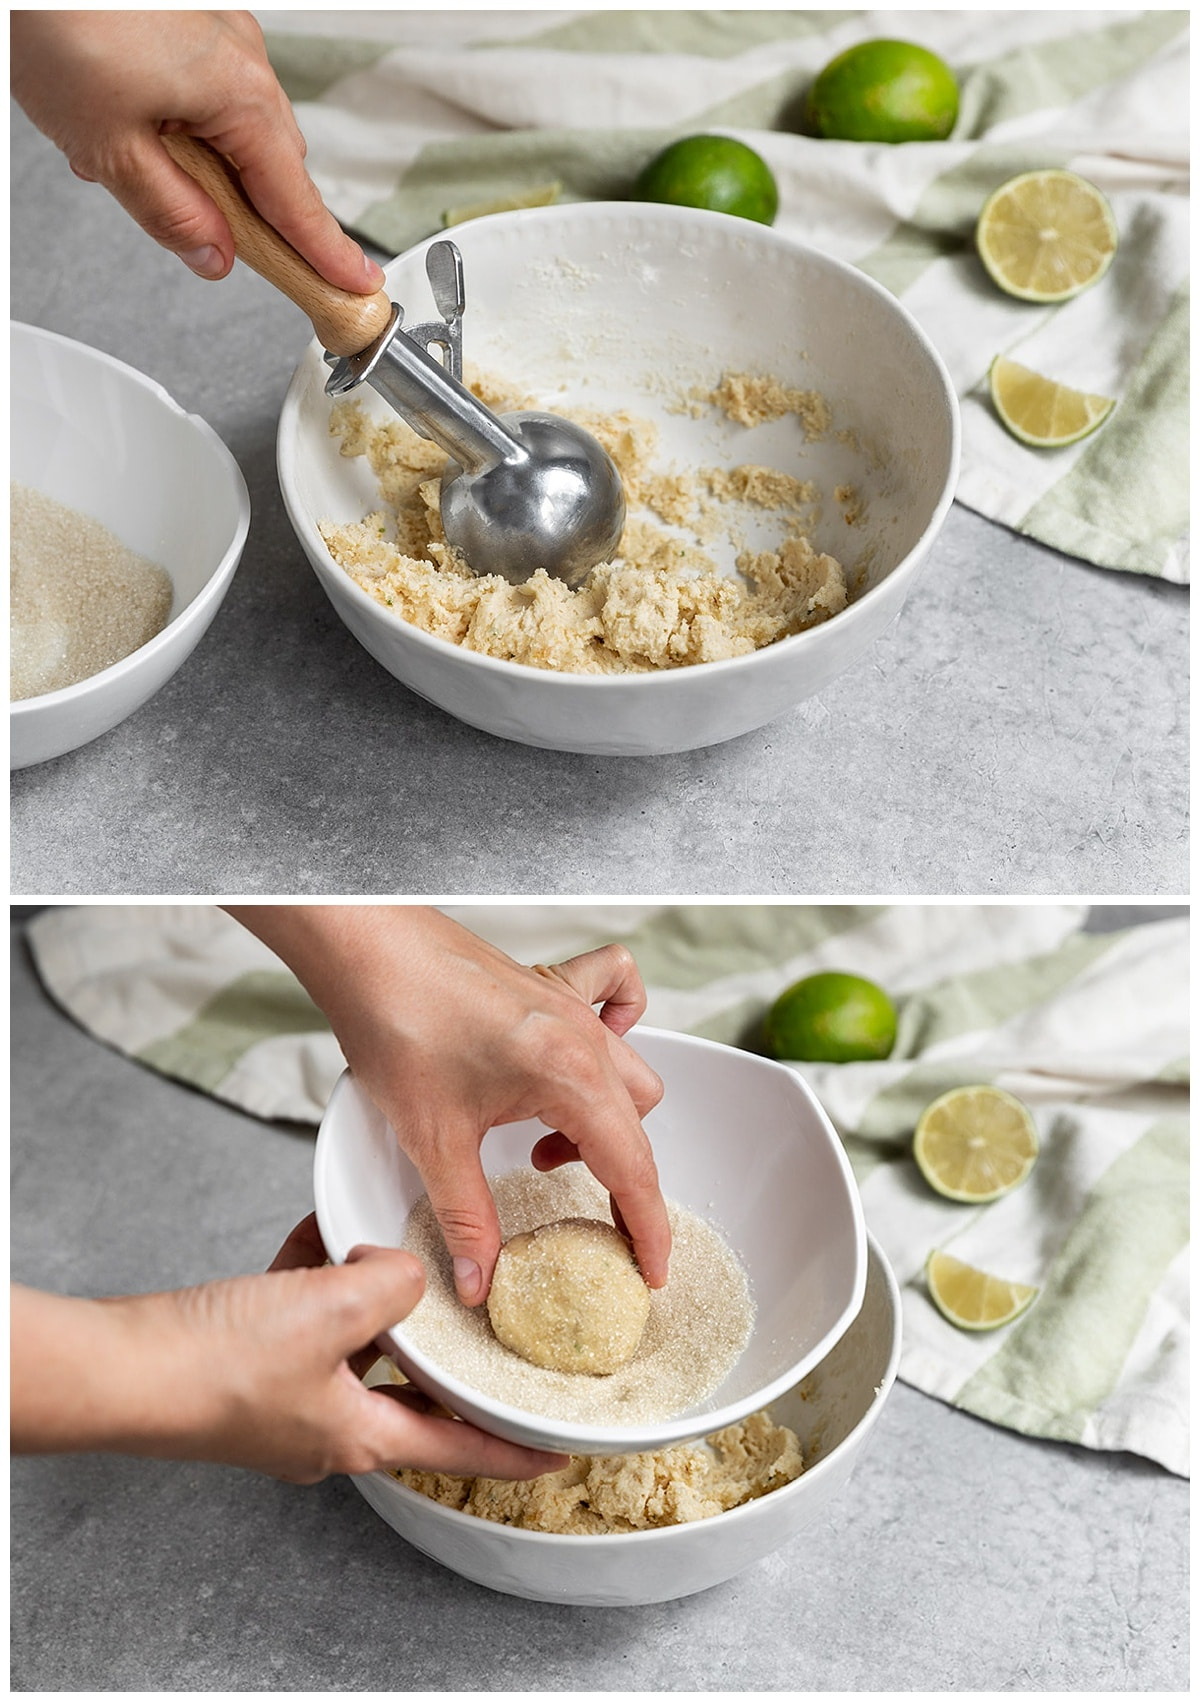 two pictures of cookie dough being scooped with cookie scooper from bowl and rolled into a ball in bowl of sugar